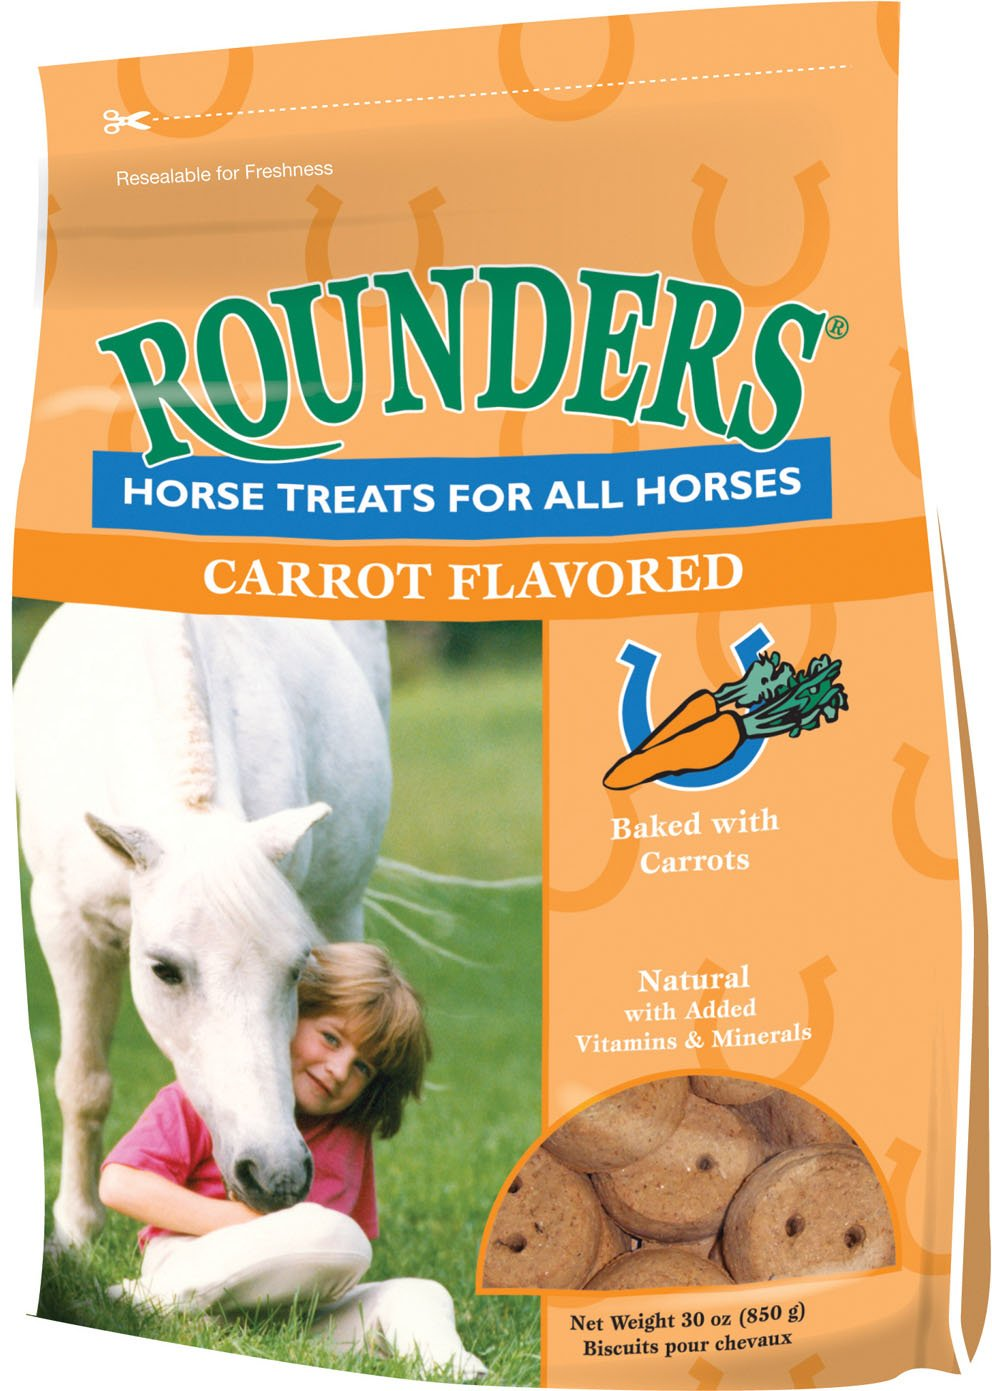 Kent Nutrition Group-Bsf 1536/428 Carrot Rounder'S Horse Treat, 30 Oz by KENT NUTRITION GROUP/BSF